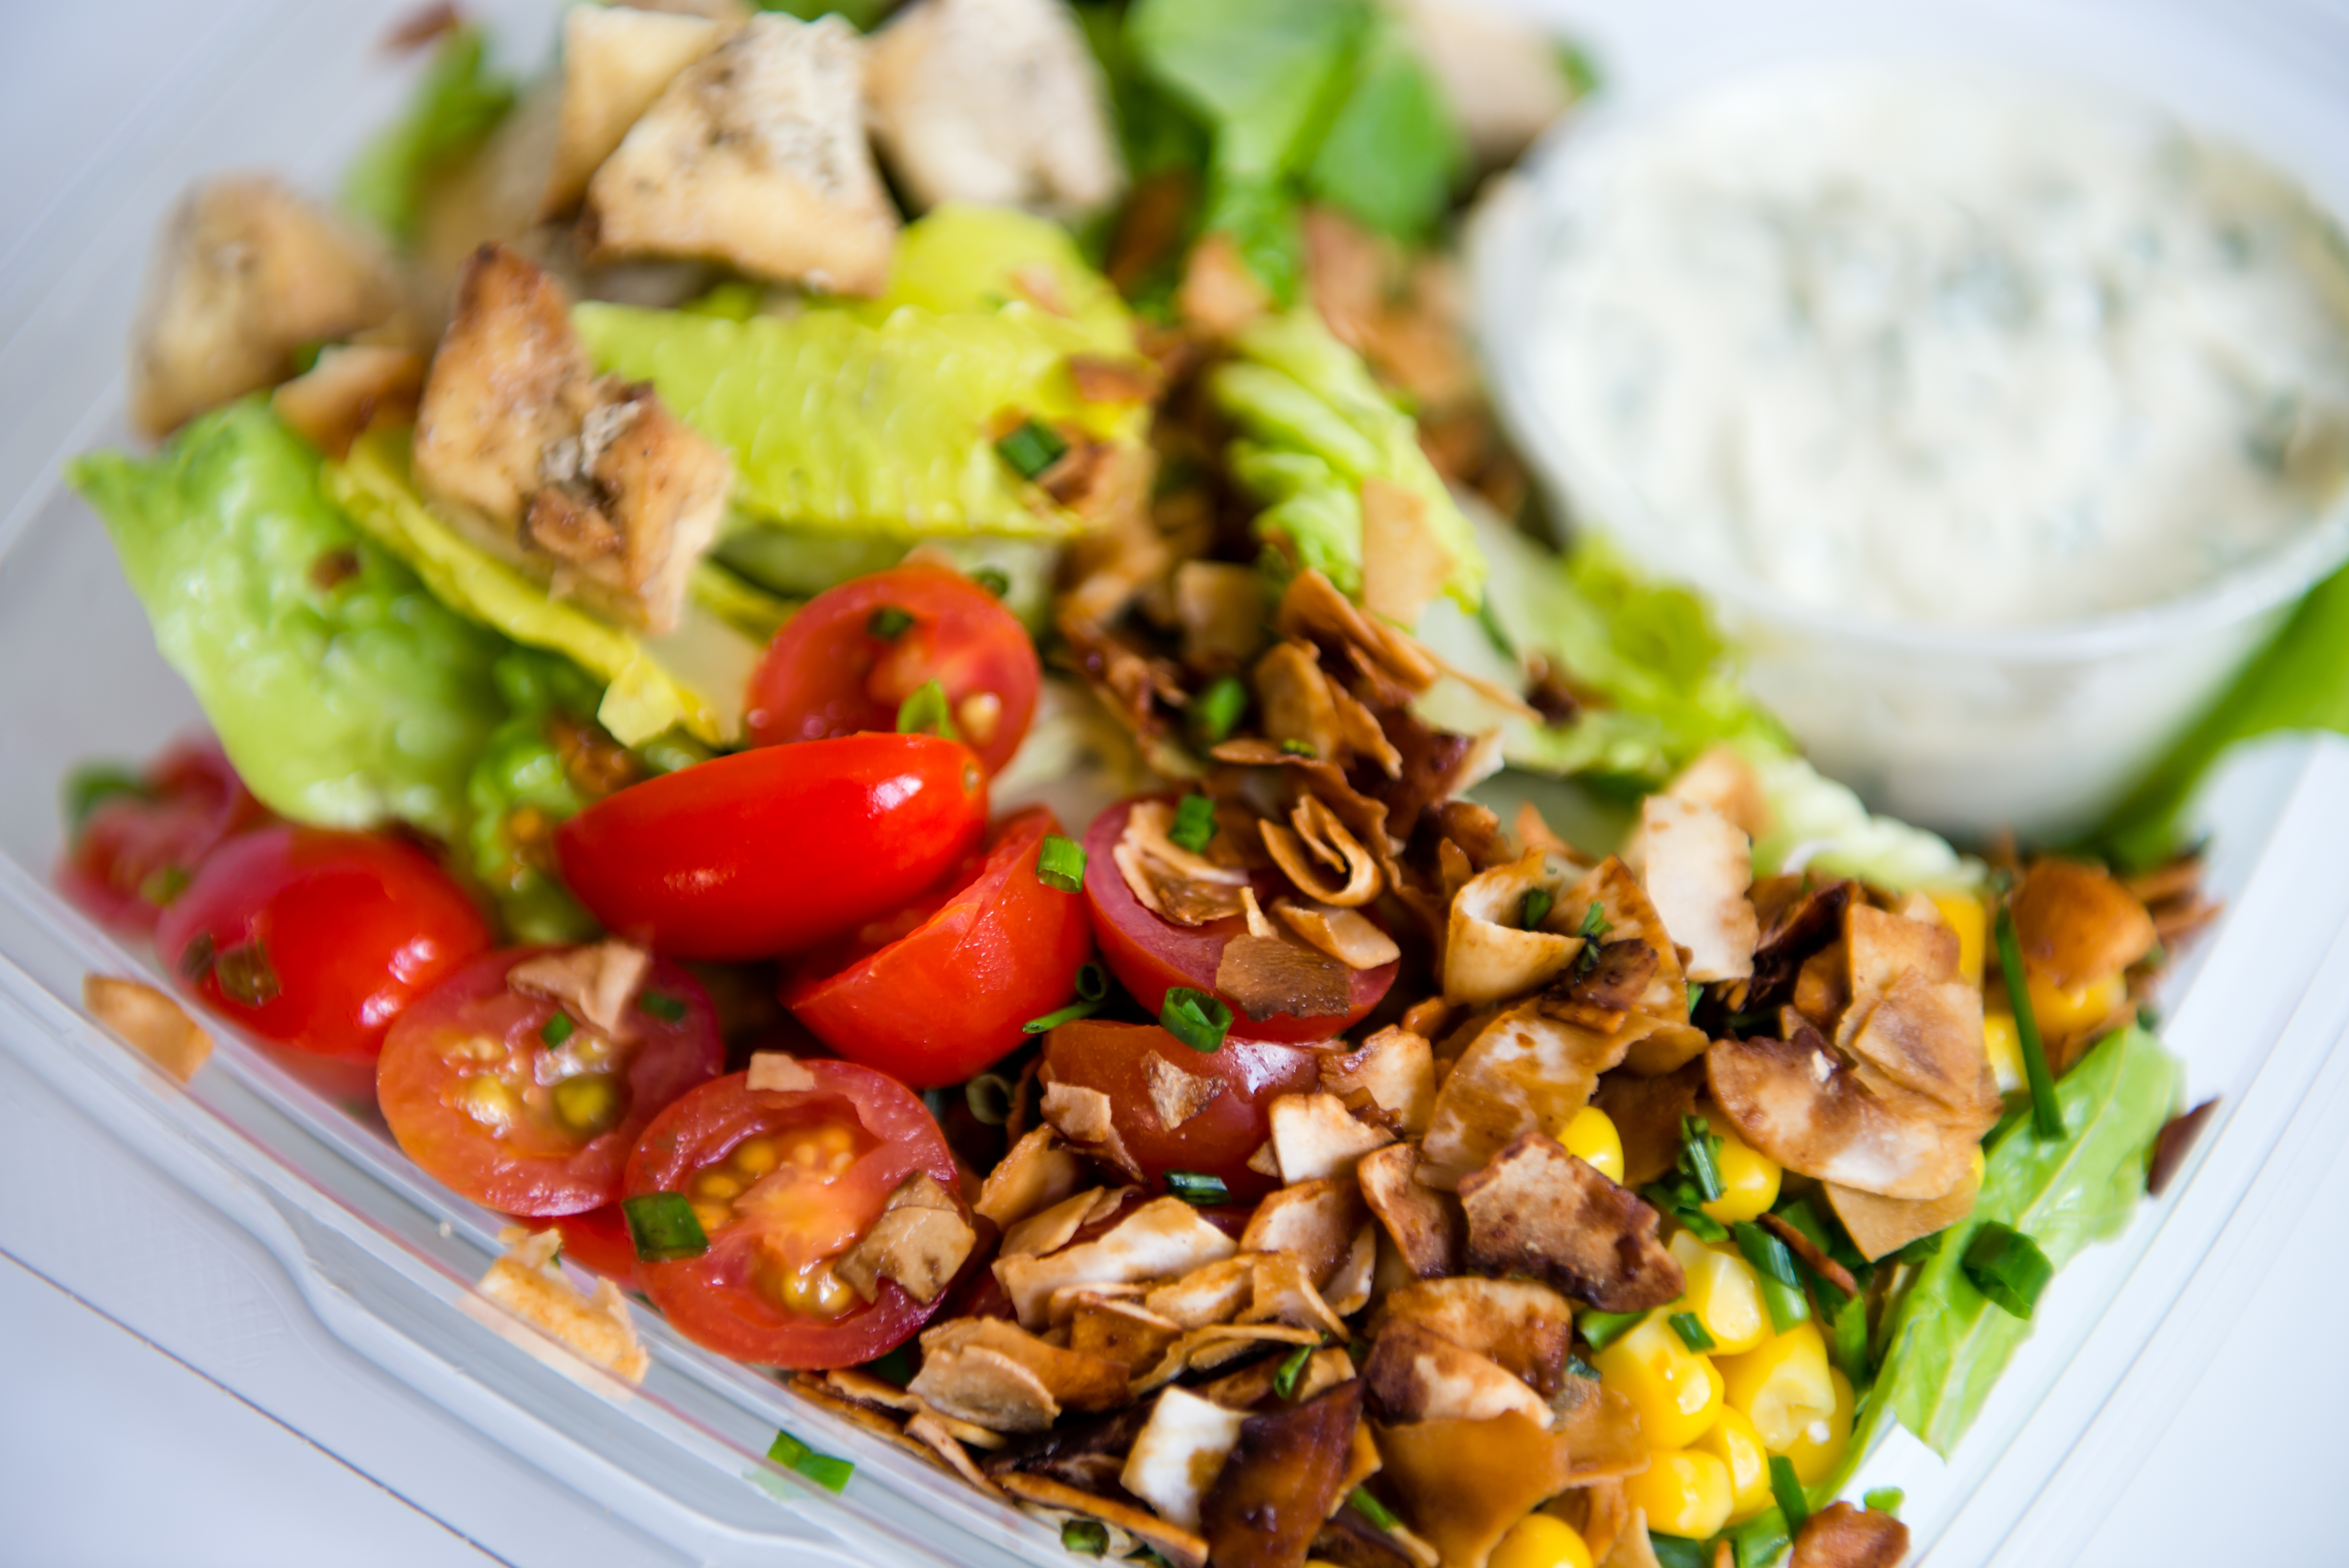 Click Here To See The Menu A Grab And Go Case Offers Myriad Options Daily